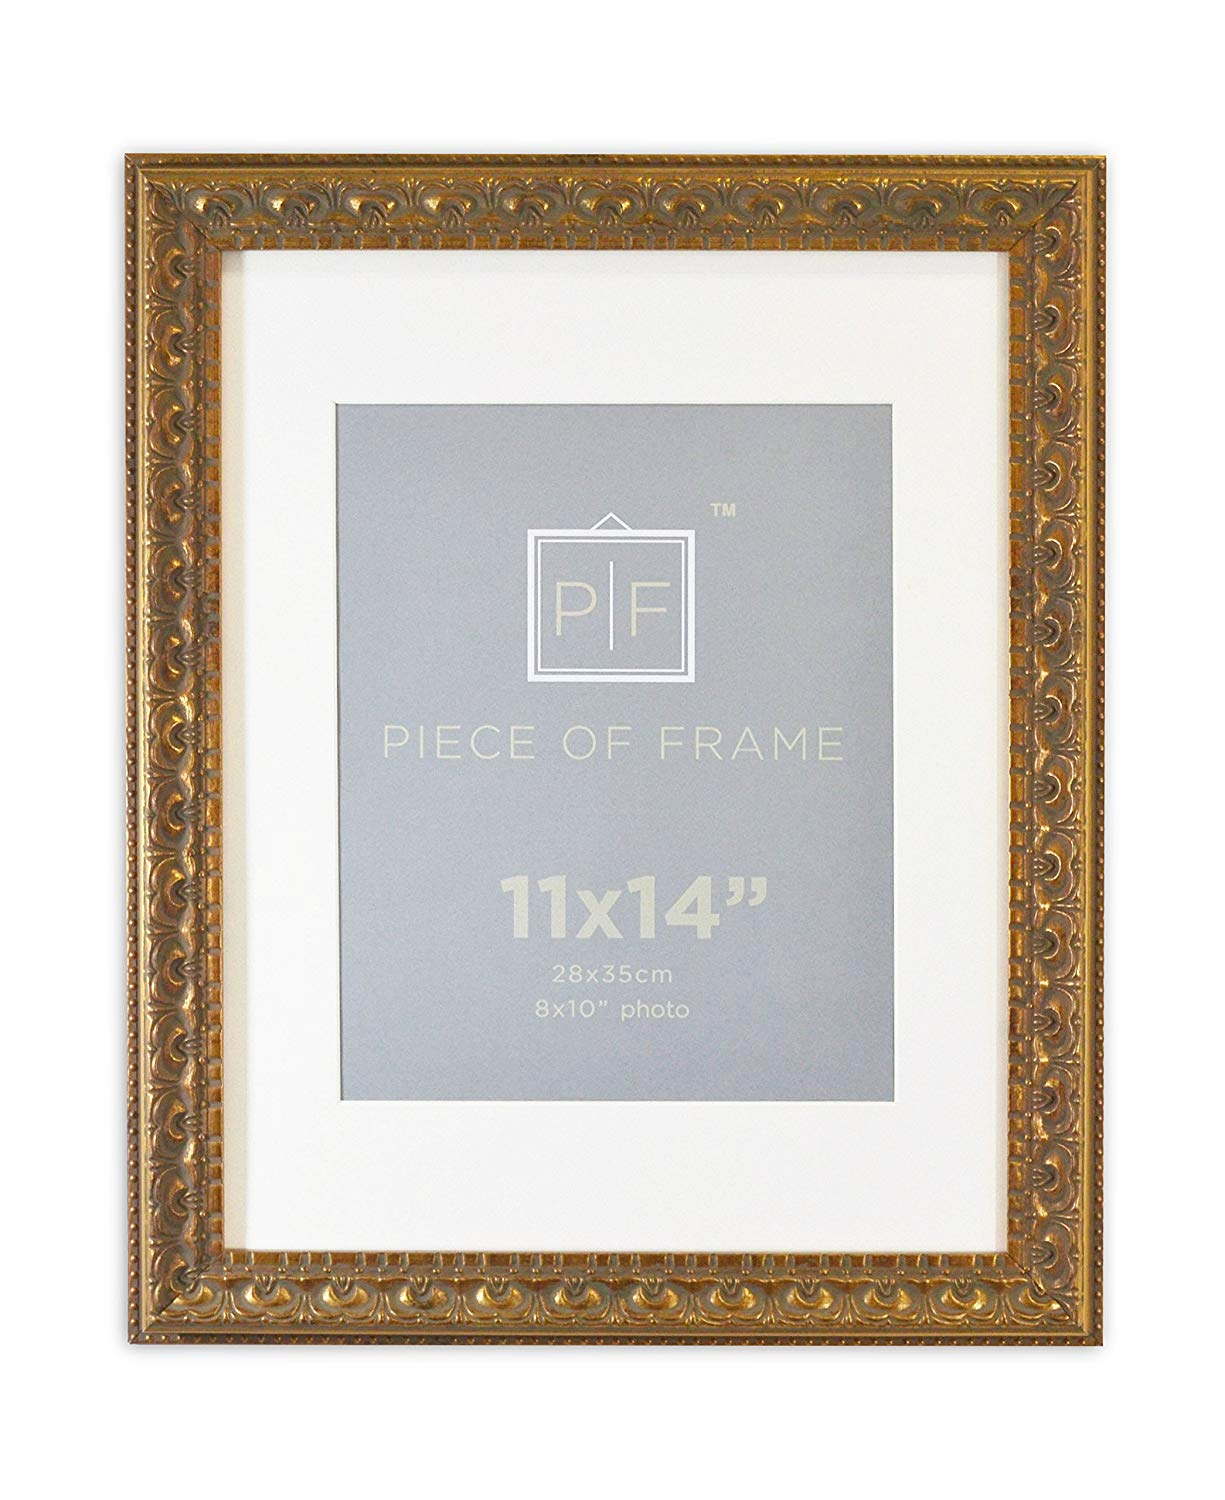 Golden State Art 11x14 Ornate Finish Photo Frame, with Ivory Mat for 8x10 Picture & Real Glass, Color Bronze